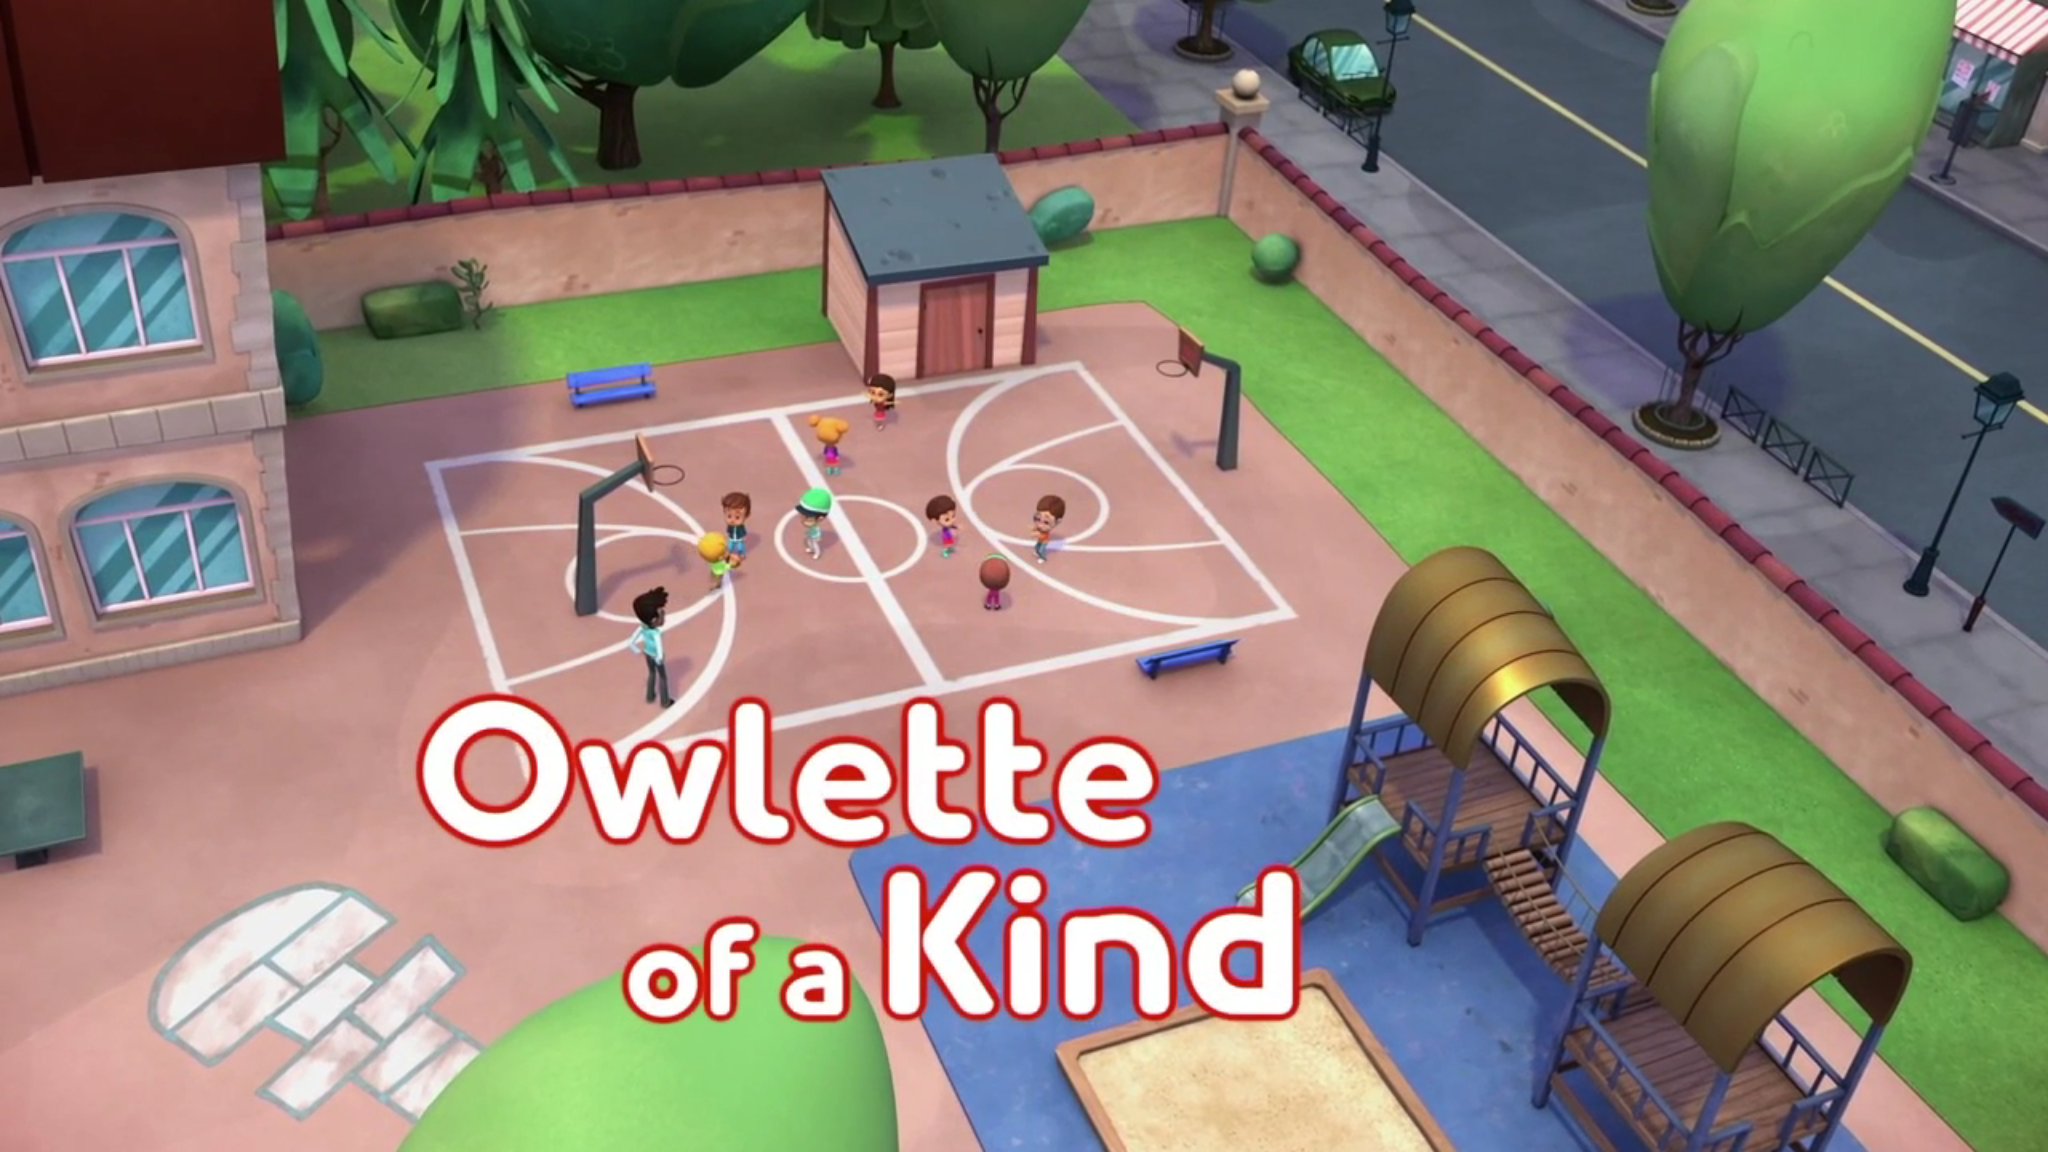 Owlette of a Kind